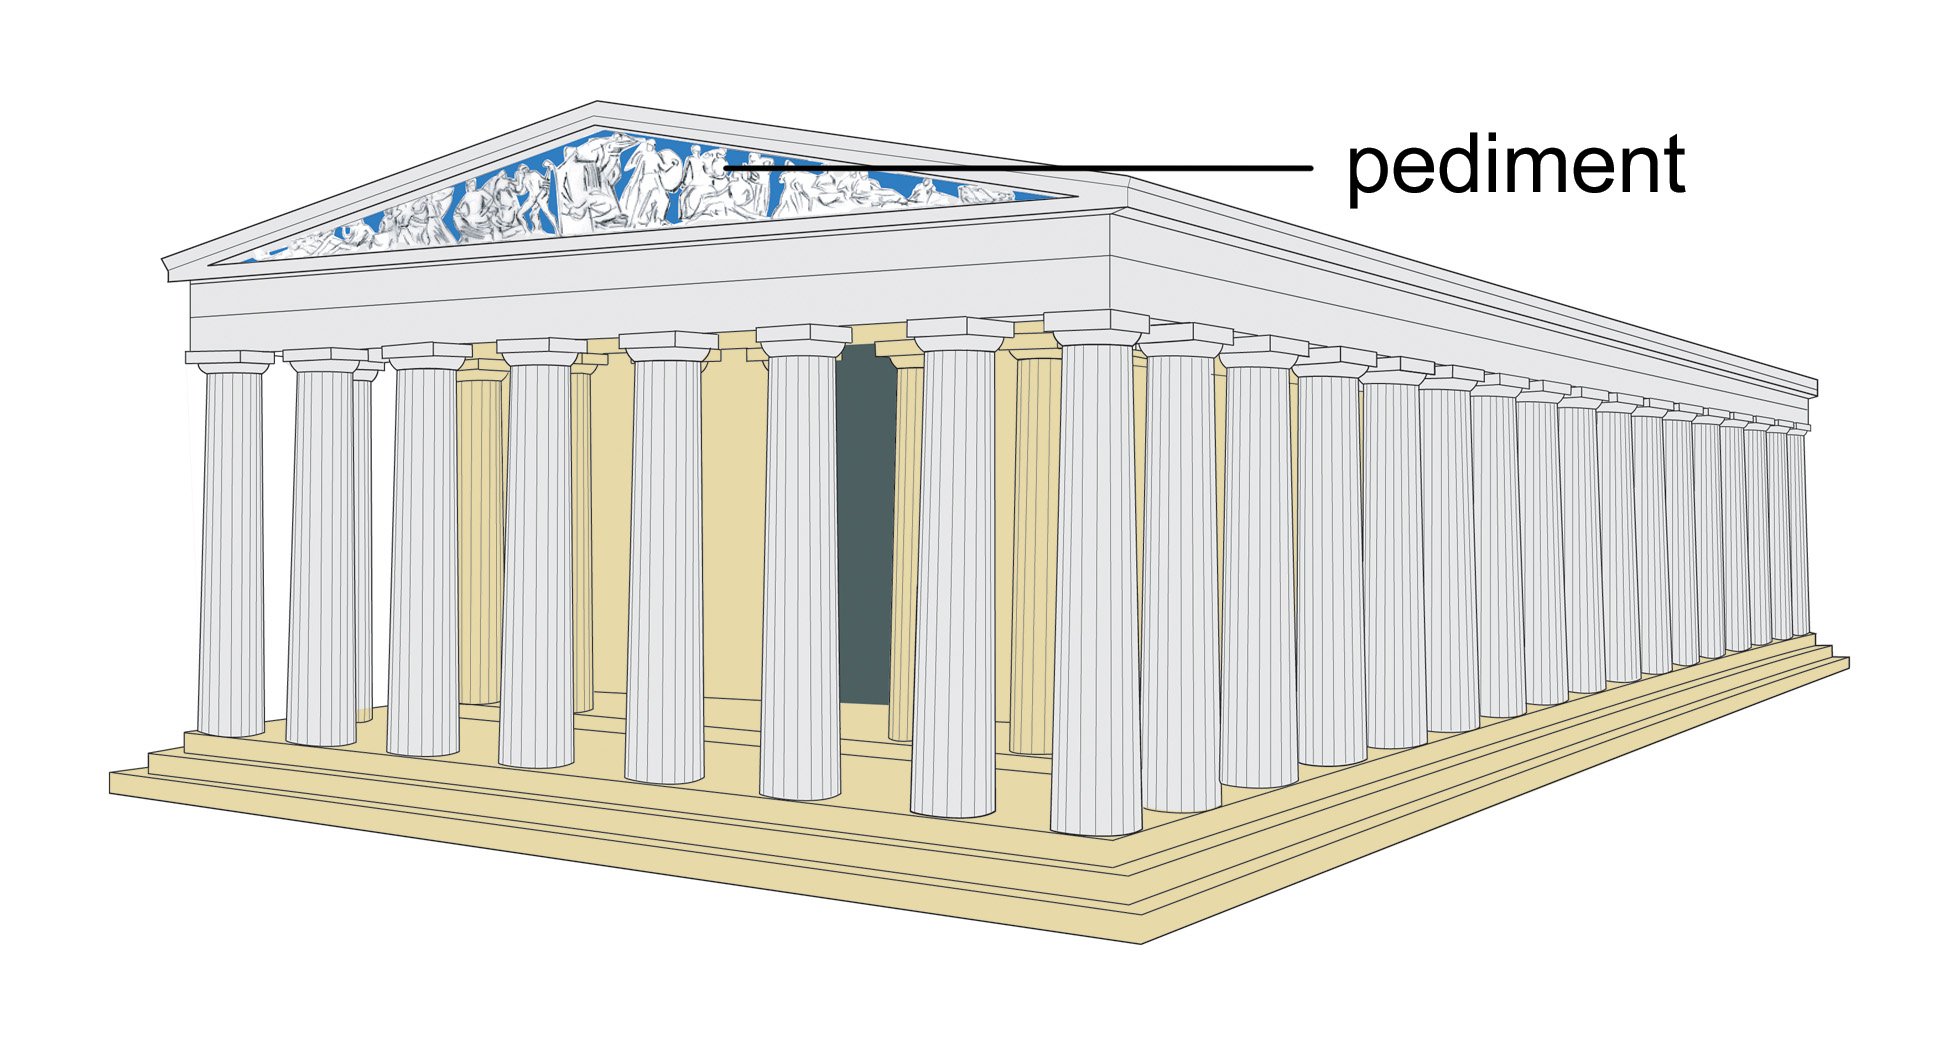 Parthenon pediment an introduction to the parthenon and its sculptures the british